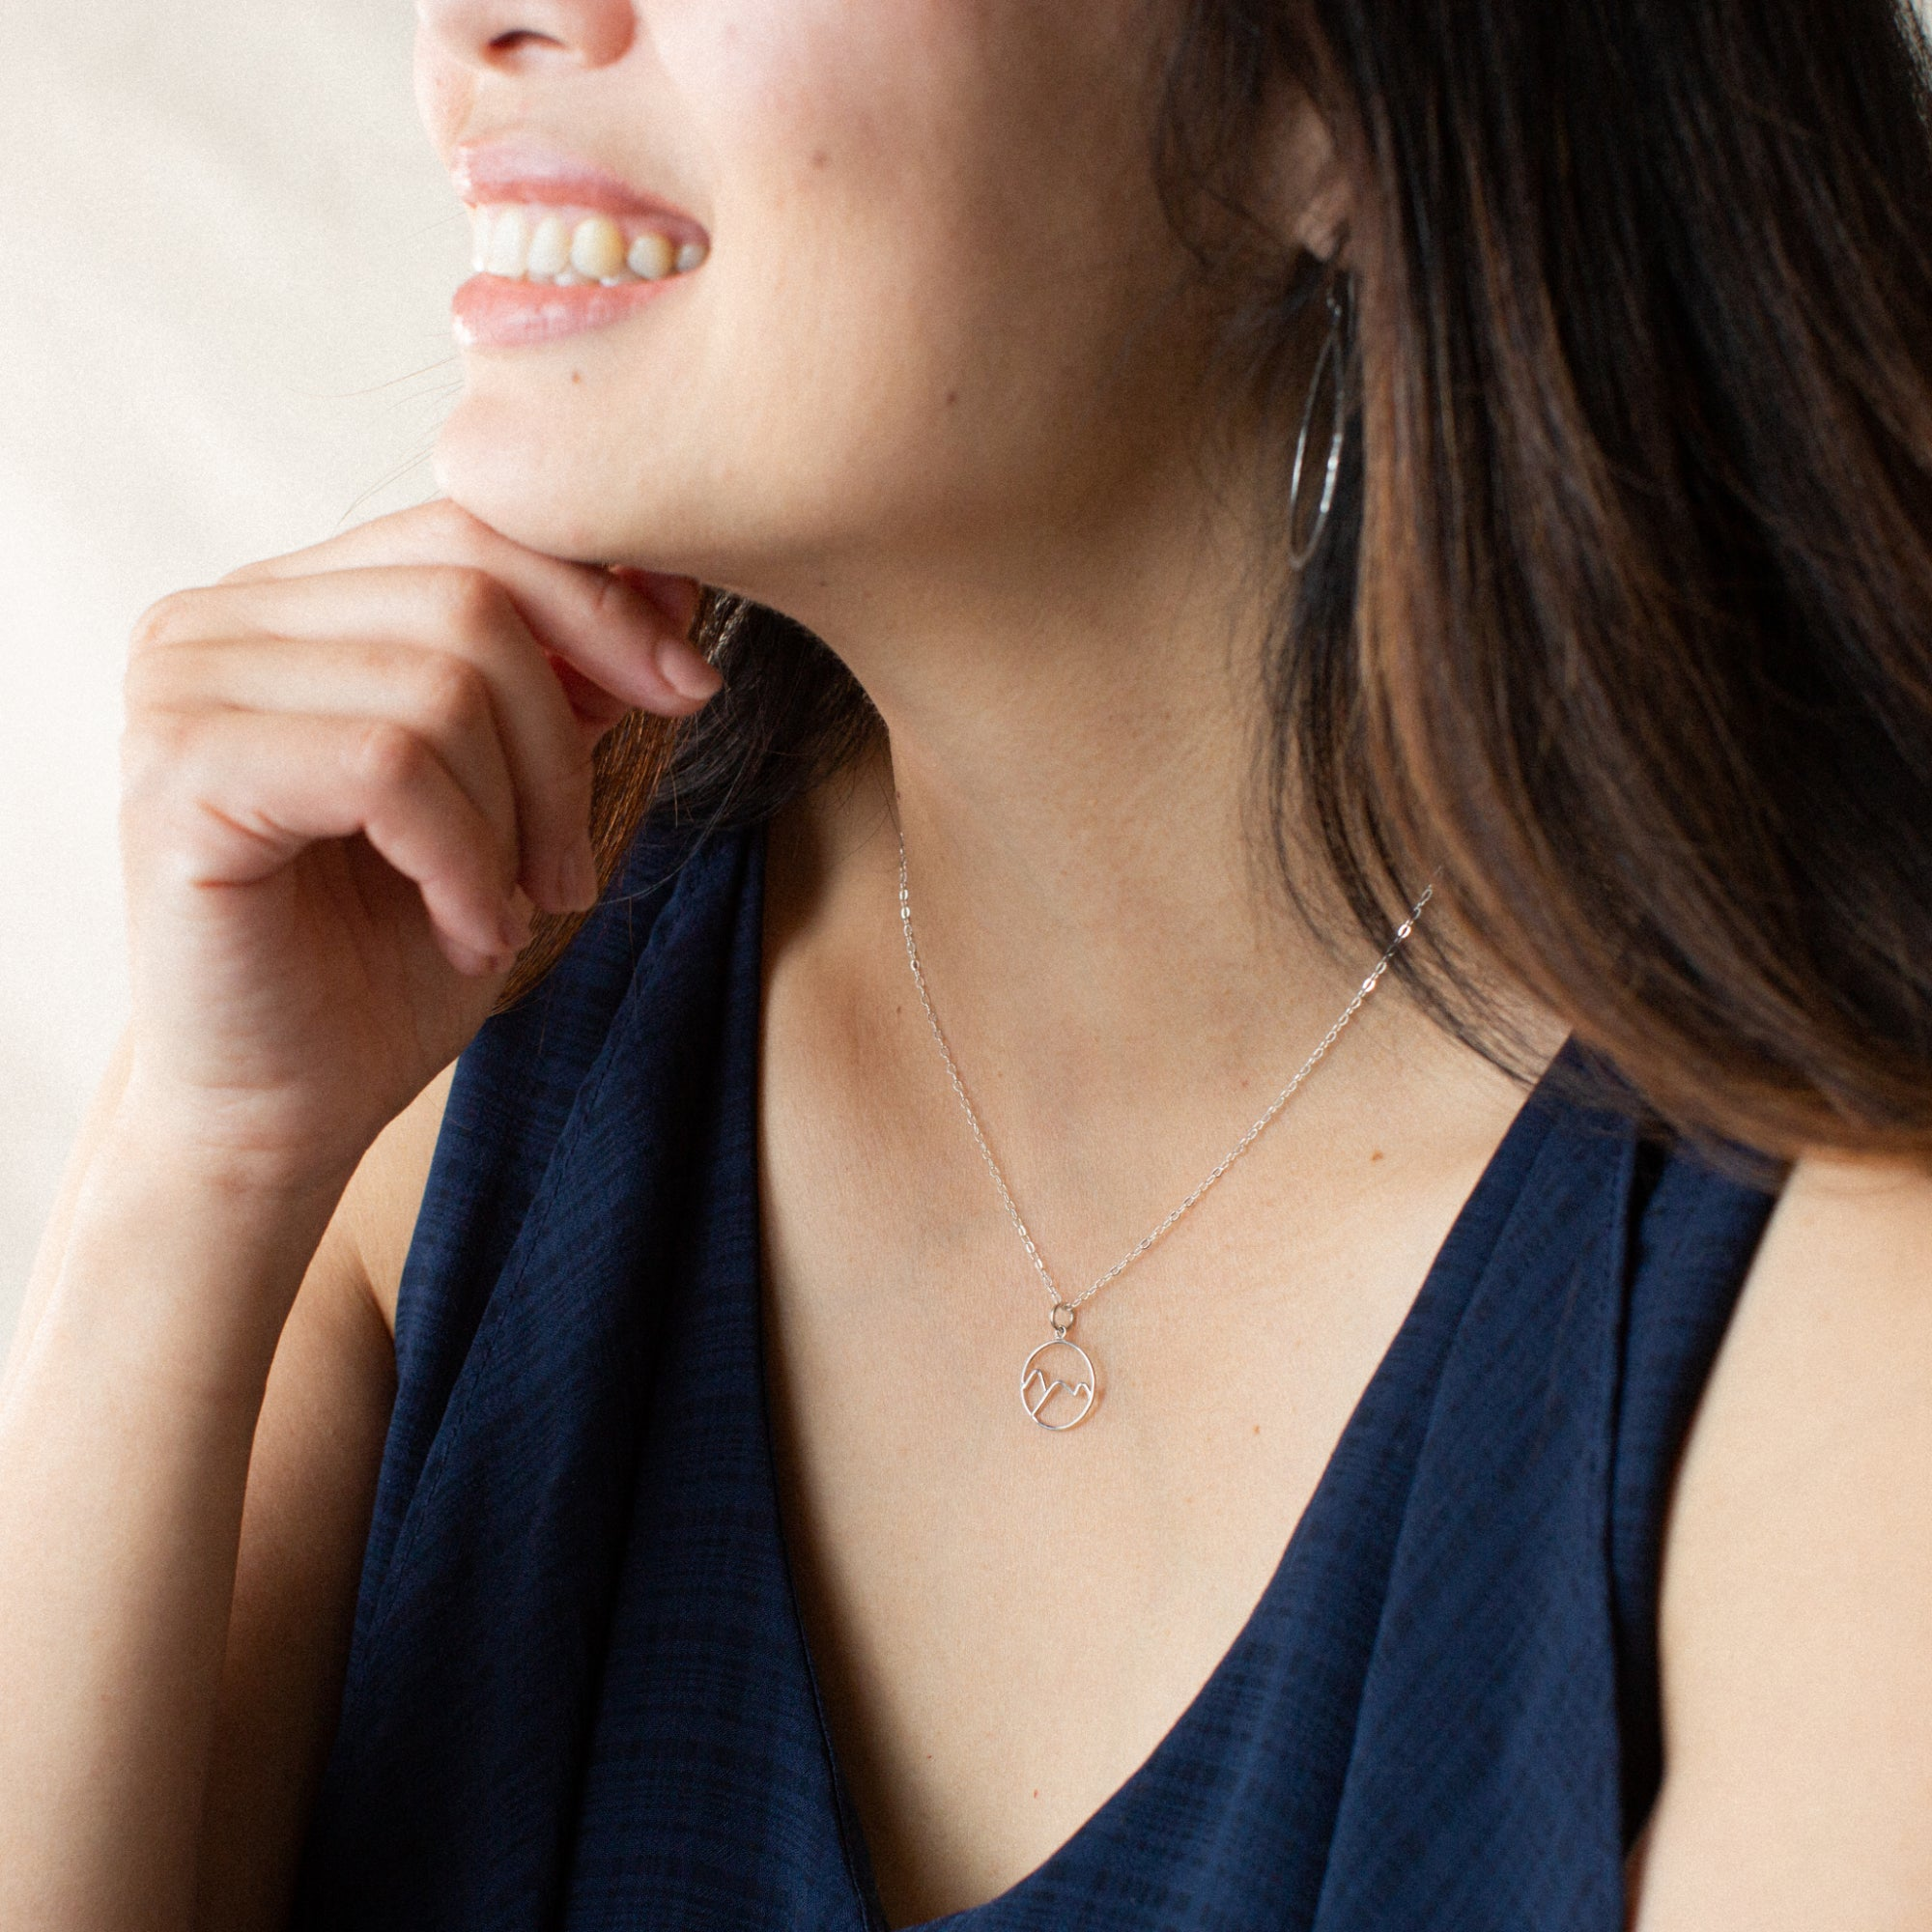 Woman in Blue Shirt Smiling and Wearing Silver Mountains Pendant Necklace 'You've Got This' Model Photo by Asha Blooms